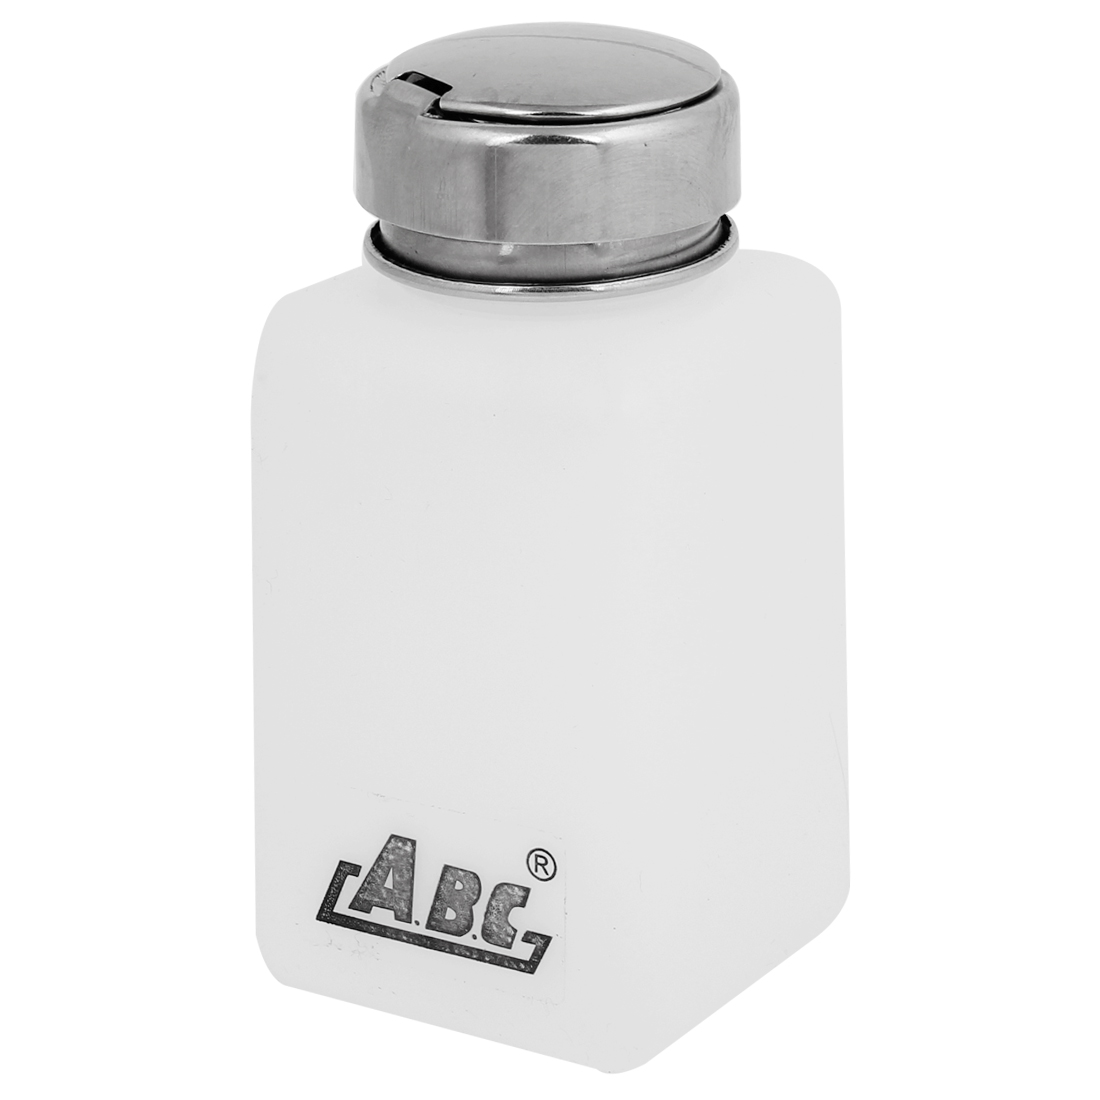 Silver Tone Metal Lid 180ml Liquid Container Alcohol Bottle White